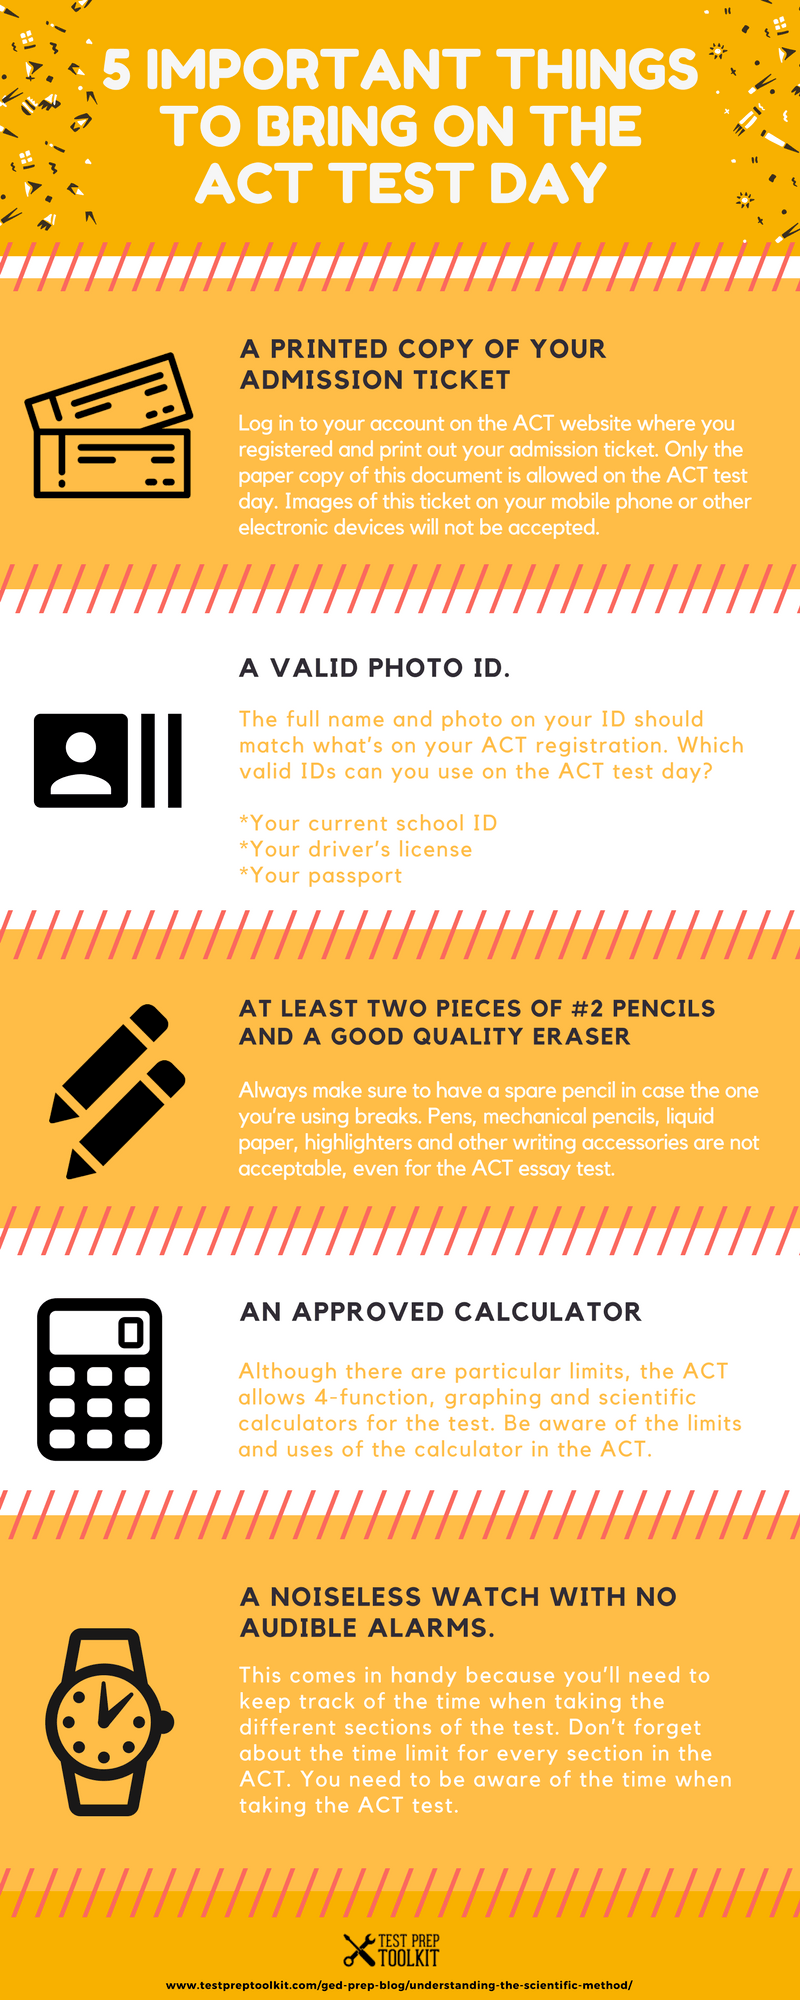 5 Important Things To Bring On The ACT Test Day Infographic